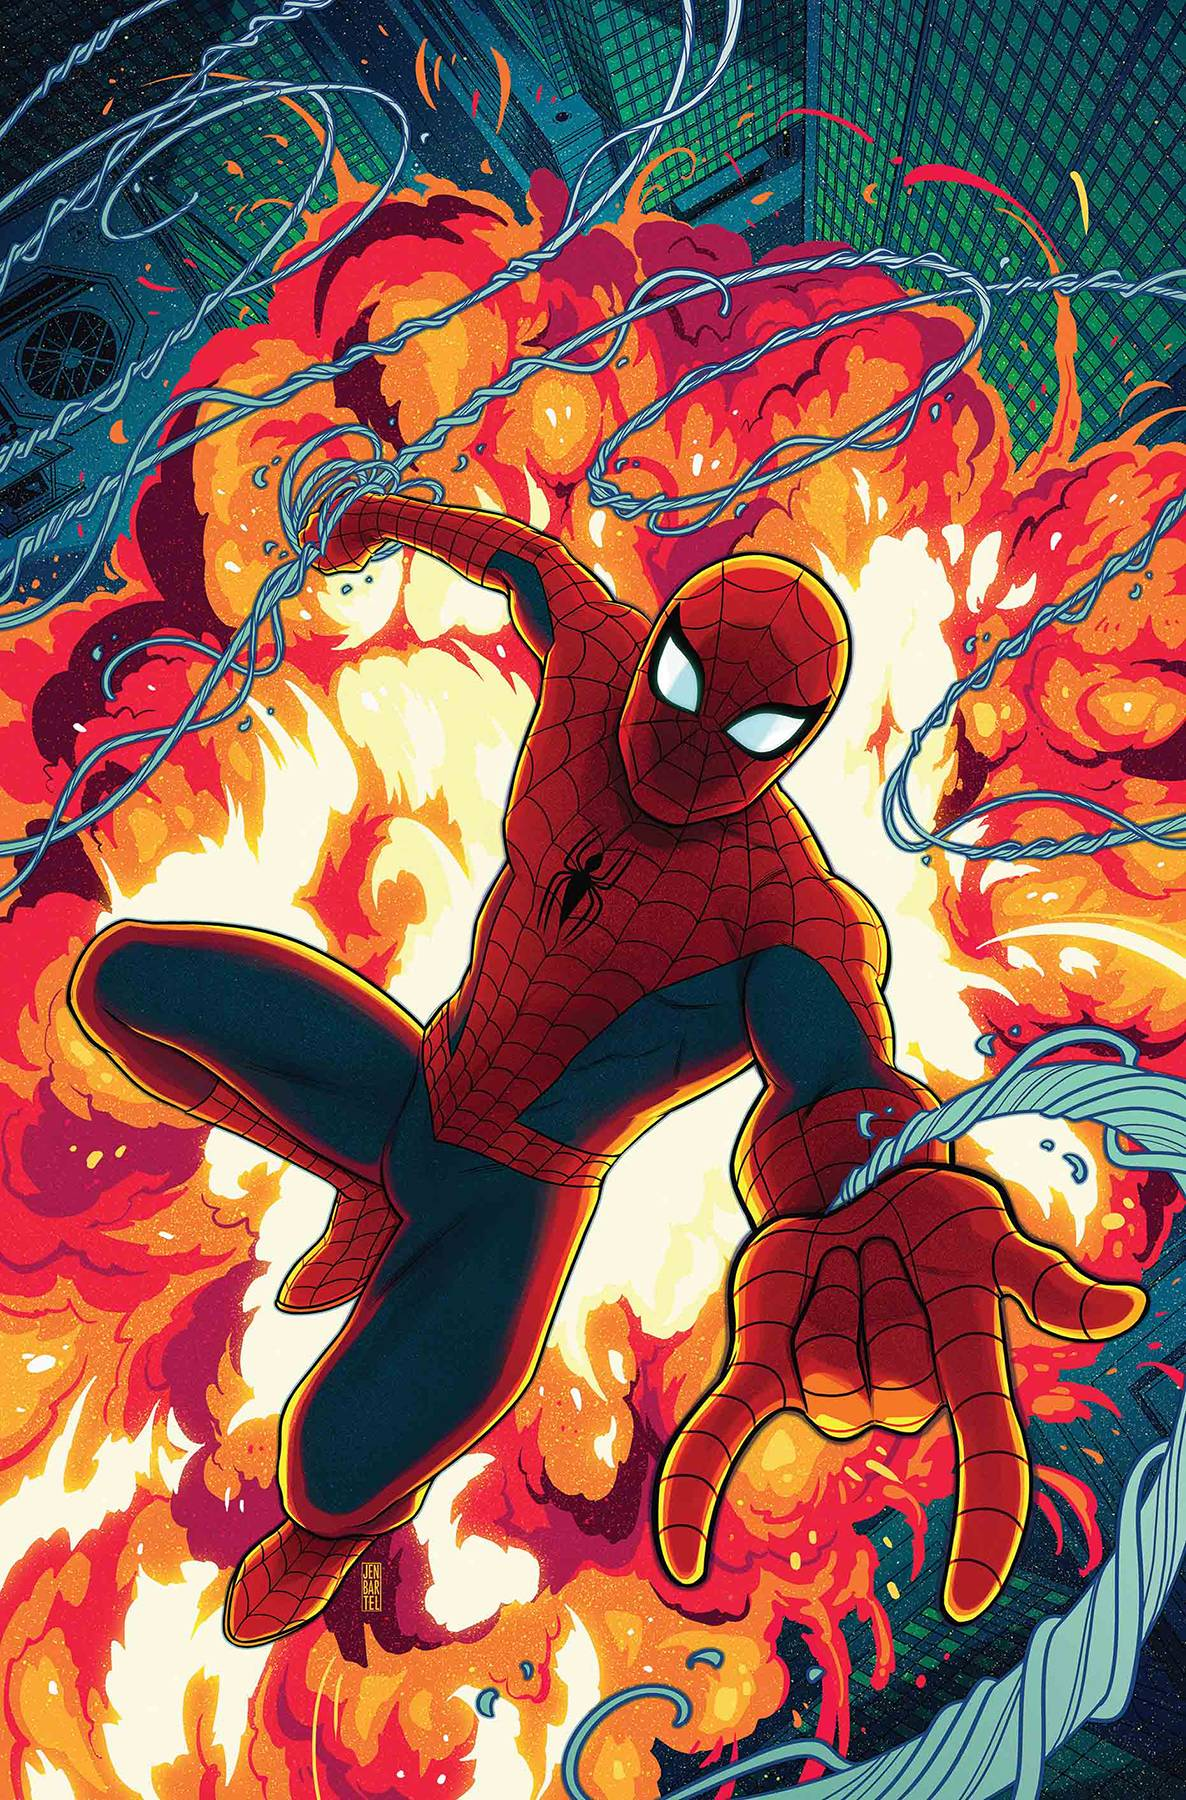 SPIDER-MAN BY BARTEL POSTER.jpg